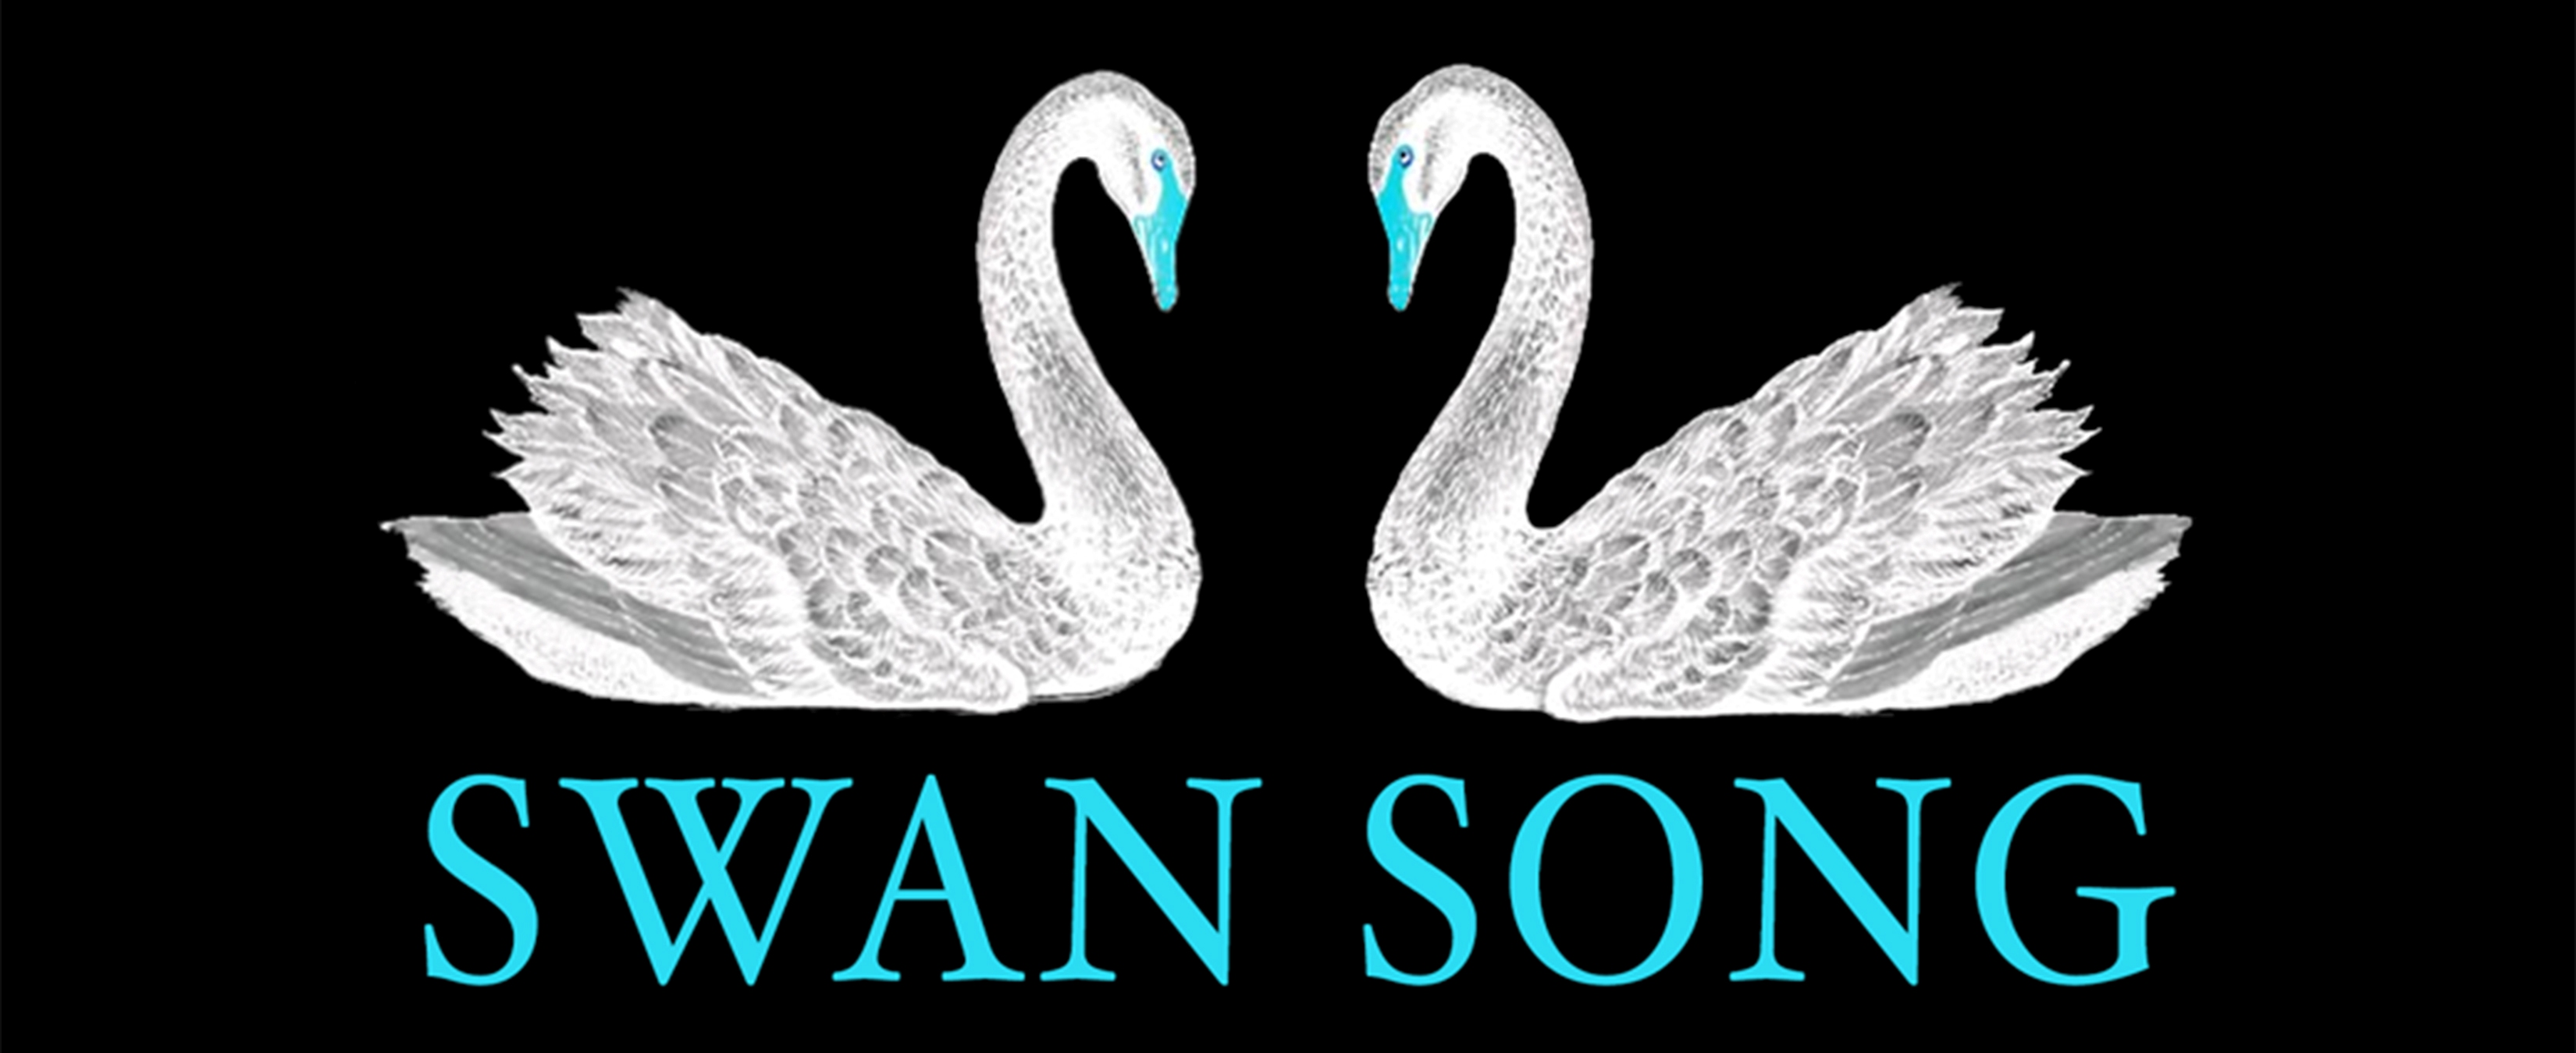 Charlotte Ward's Swan Song | HOAXTEAD RESEARCH